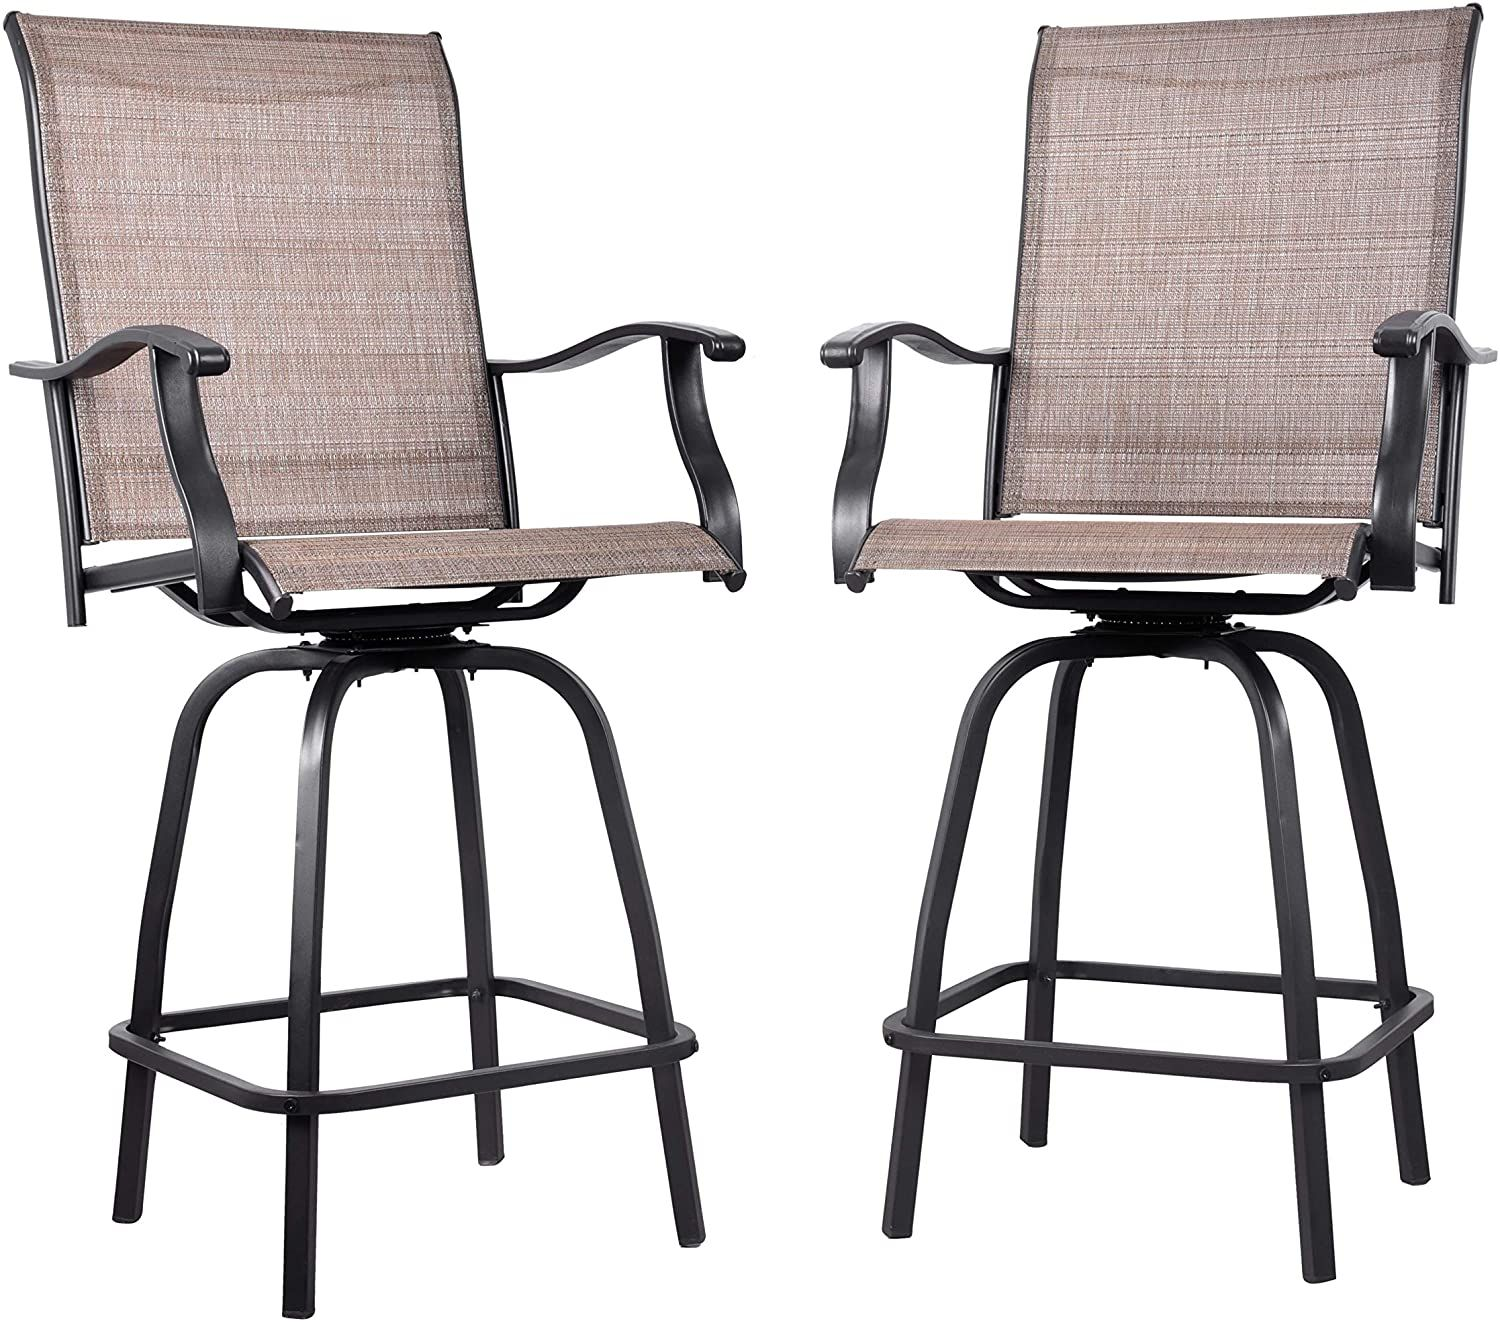 Counter Height Patio Stools In 2020 Bar Stools Swivel Bar Stools Outdoor Bar Stools